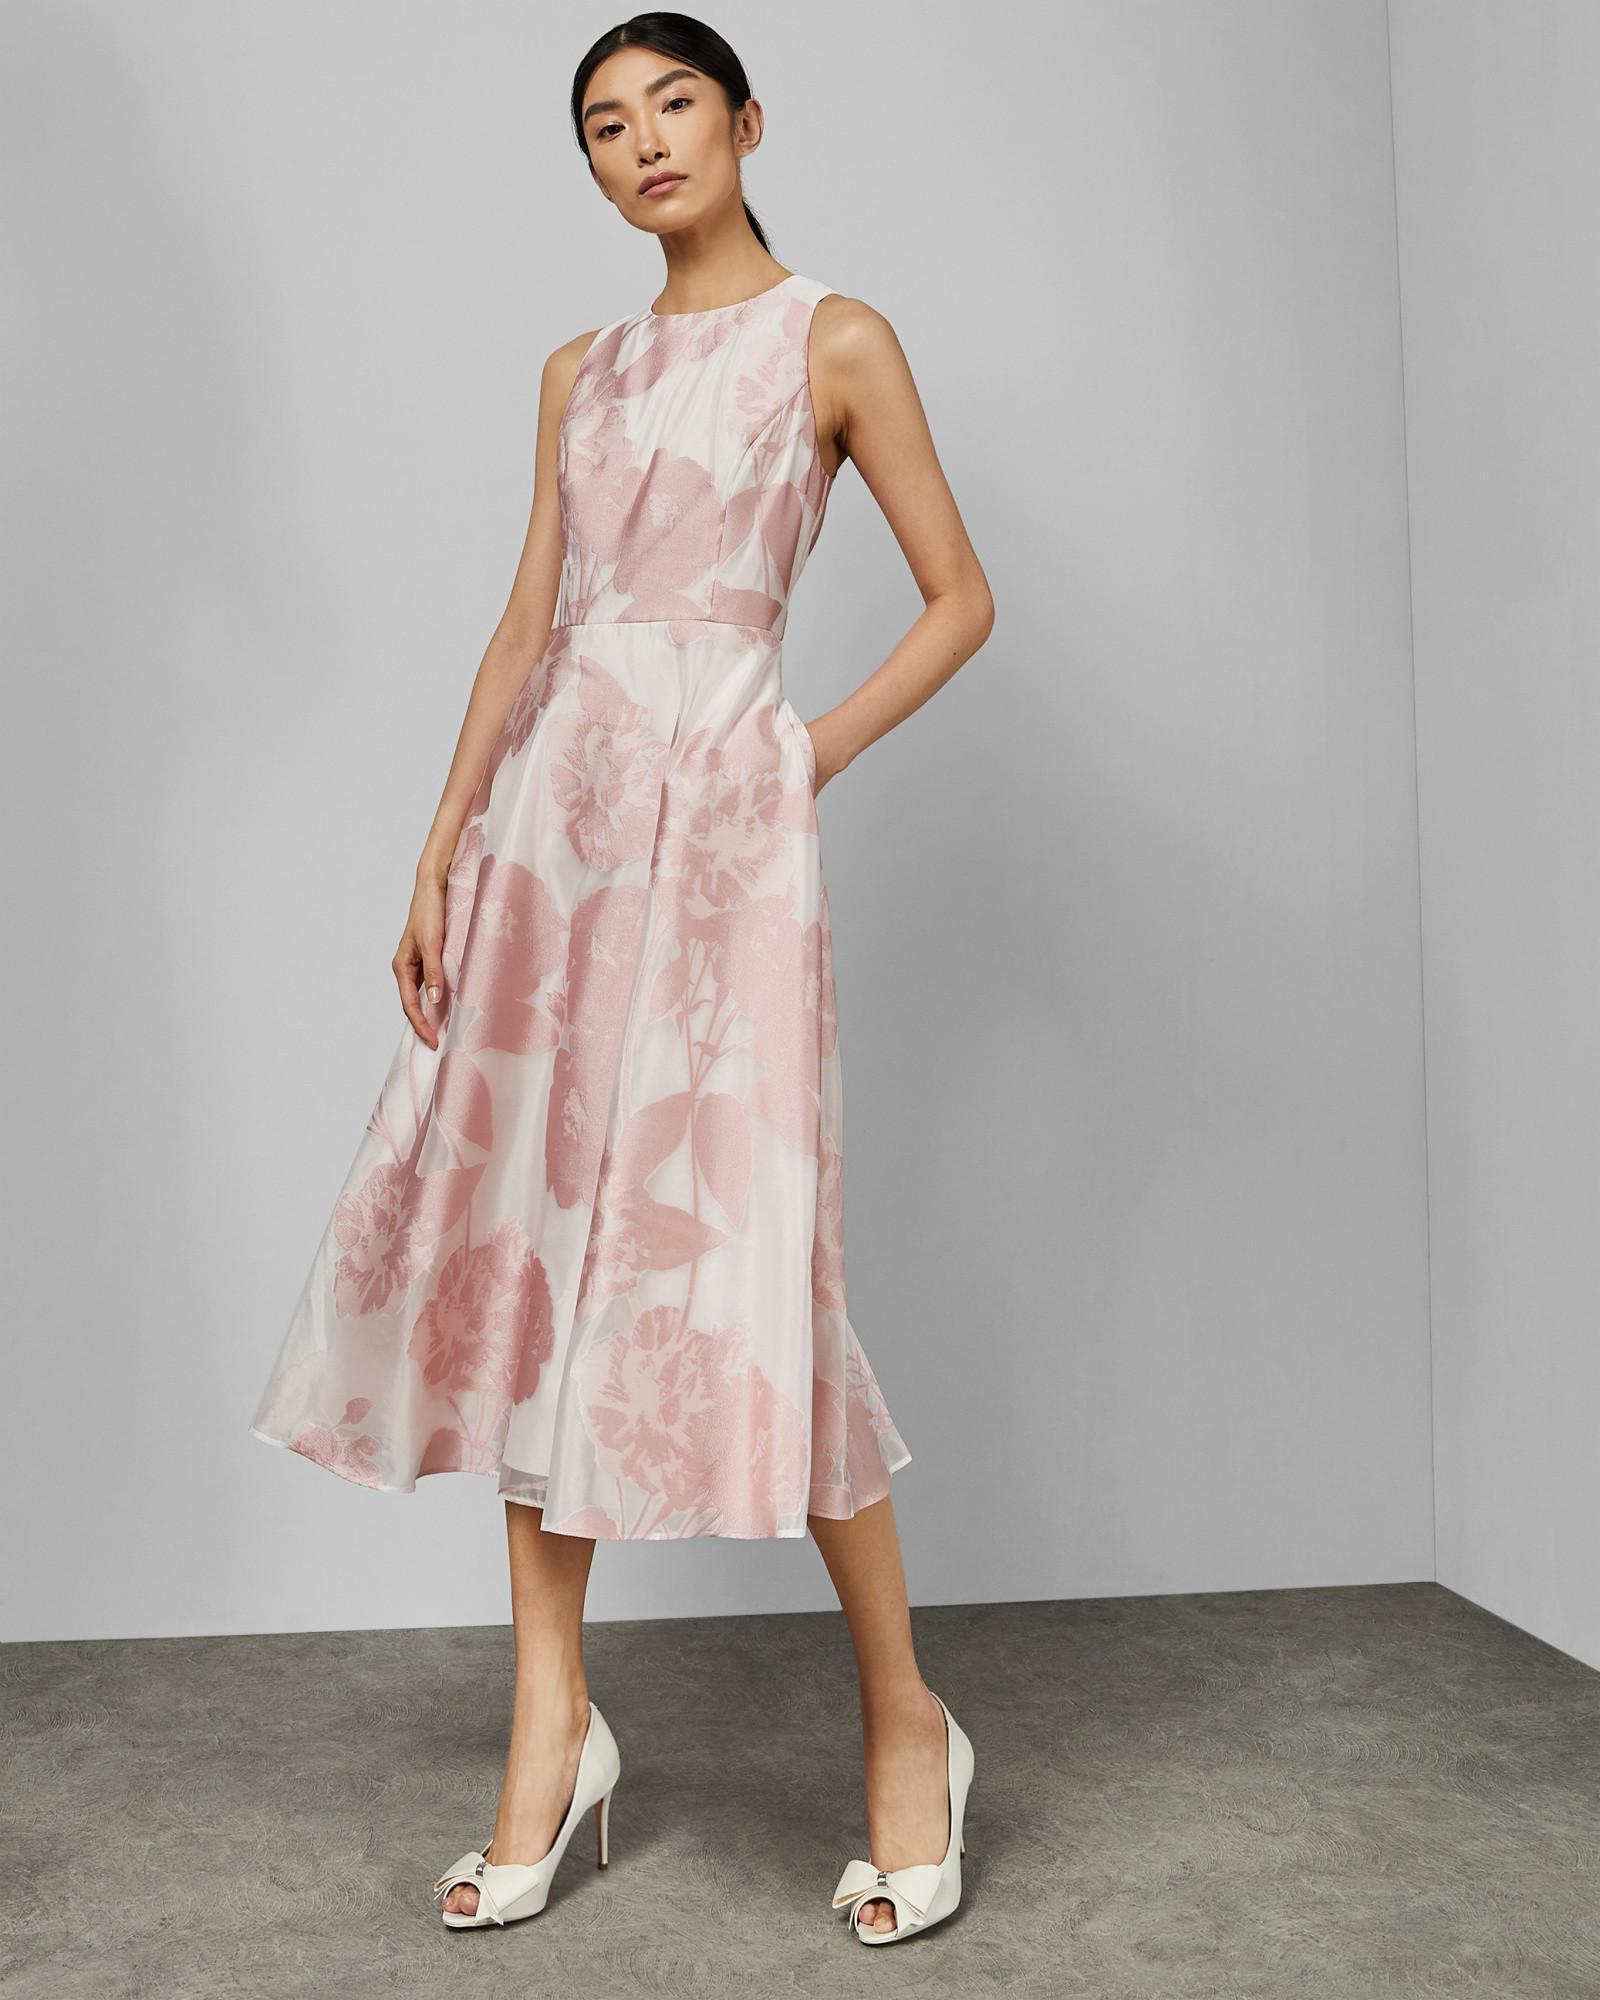 845f3af2d Ted Baker Wylieh Jacquard Midi Dress in Pink - Lyst